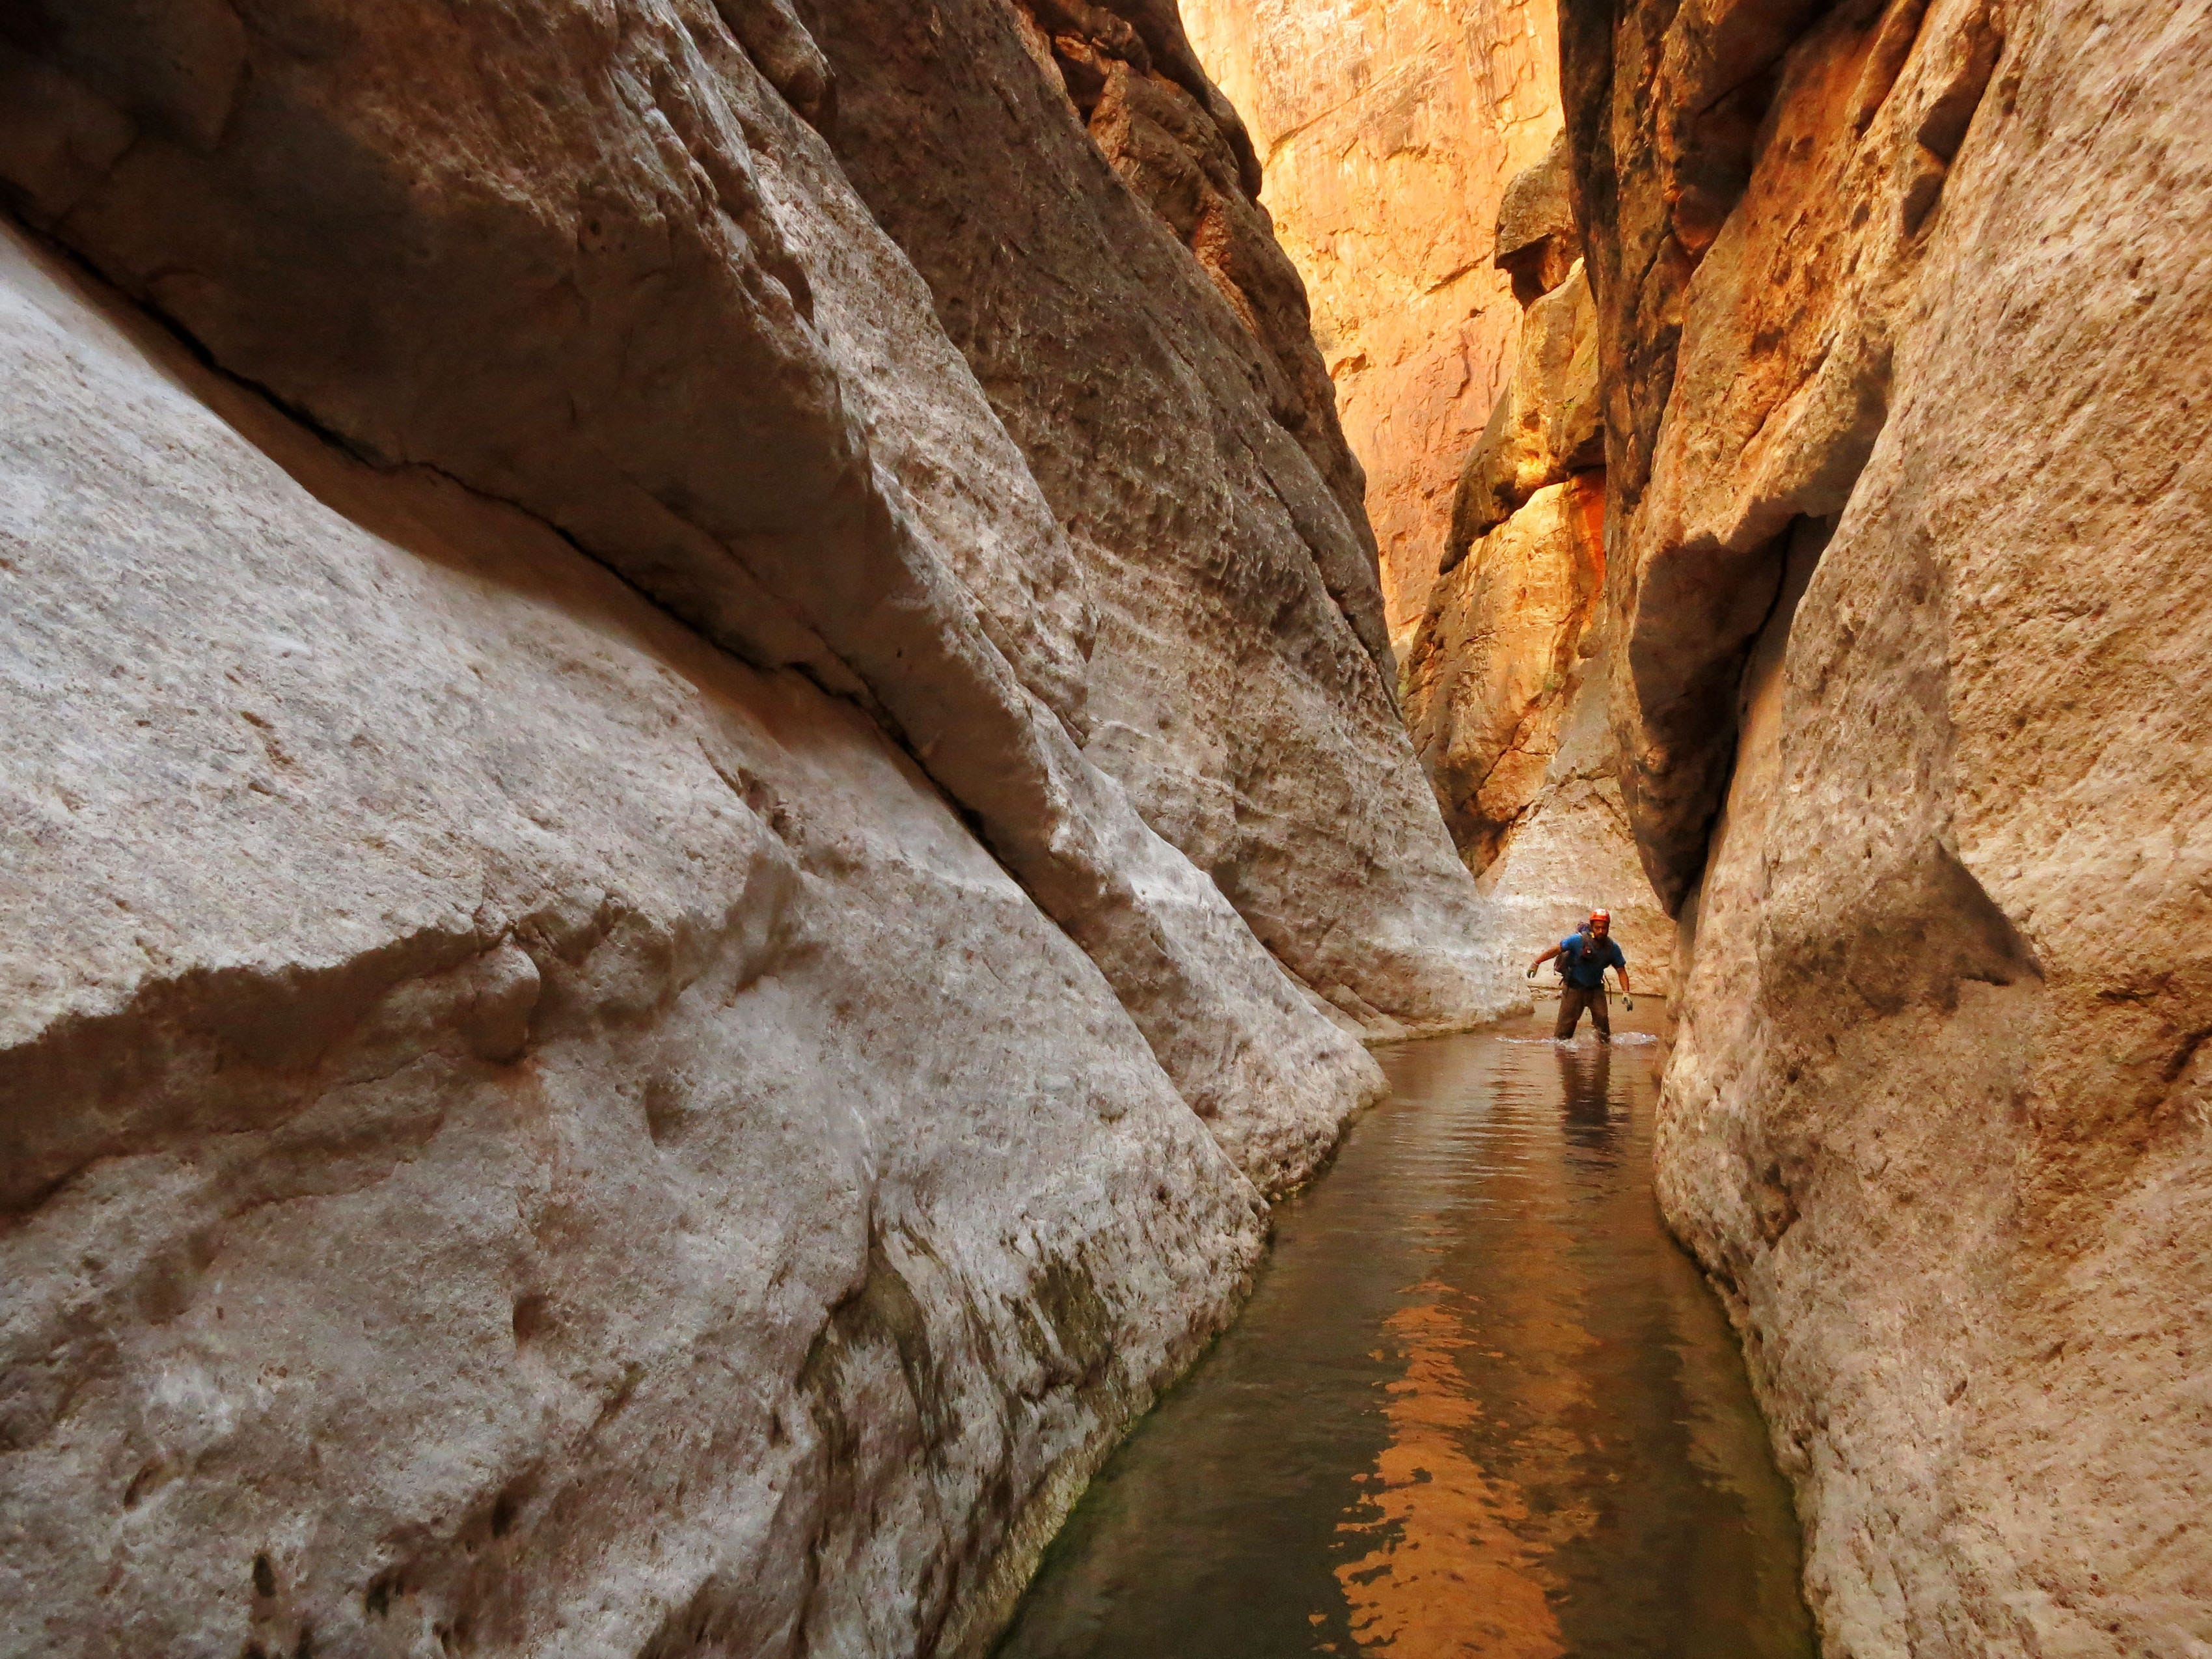 Eric Luth wades through water in the redwall narrows of a side canyon of the Colorado River in Grand Canyon National Park. Hundreds of side canyon drainages meet the Colorado River in Grand Canyon and offer a glimpse into something not impacted by Glen Canyon Dam.